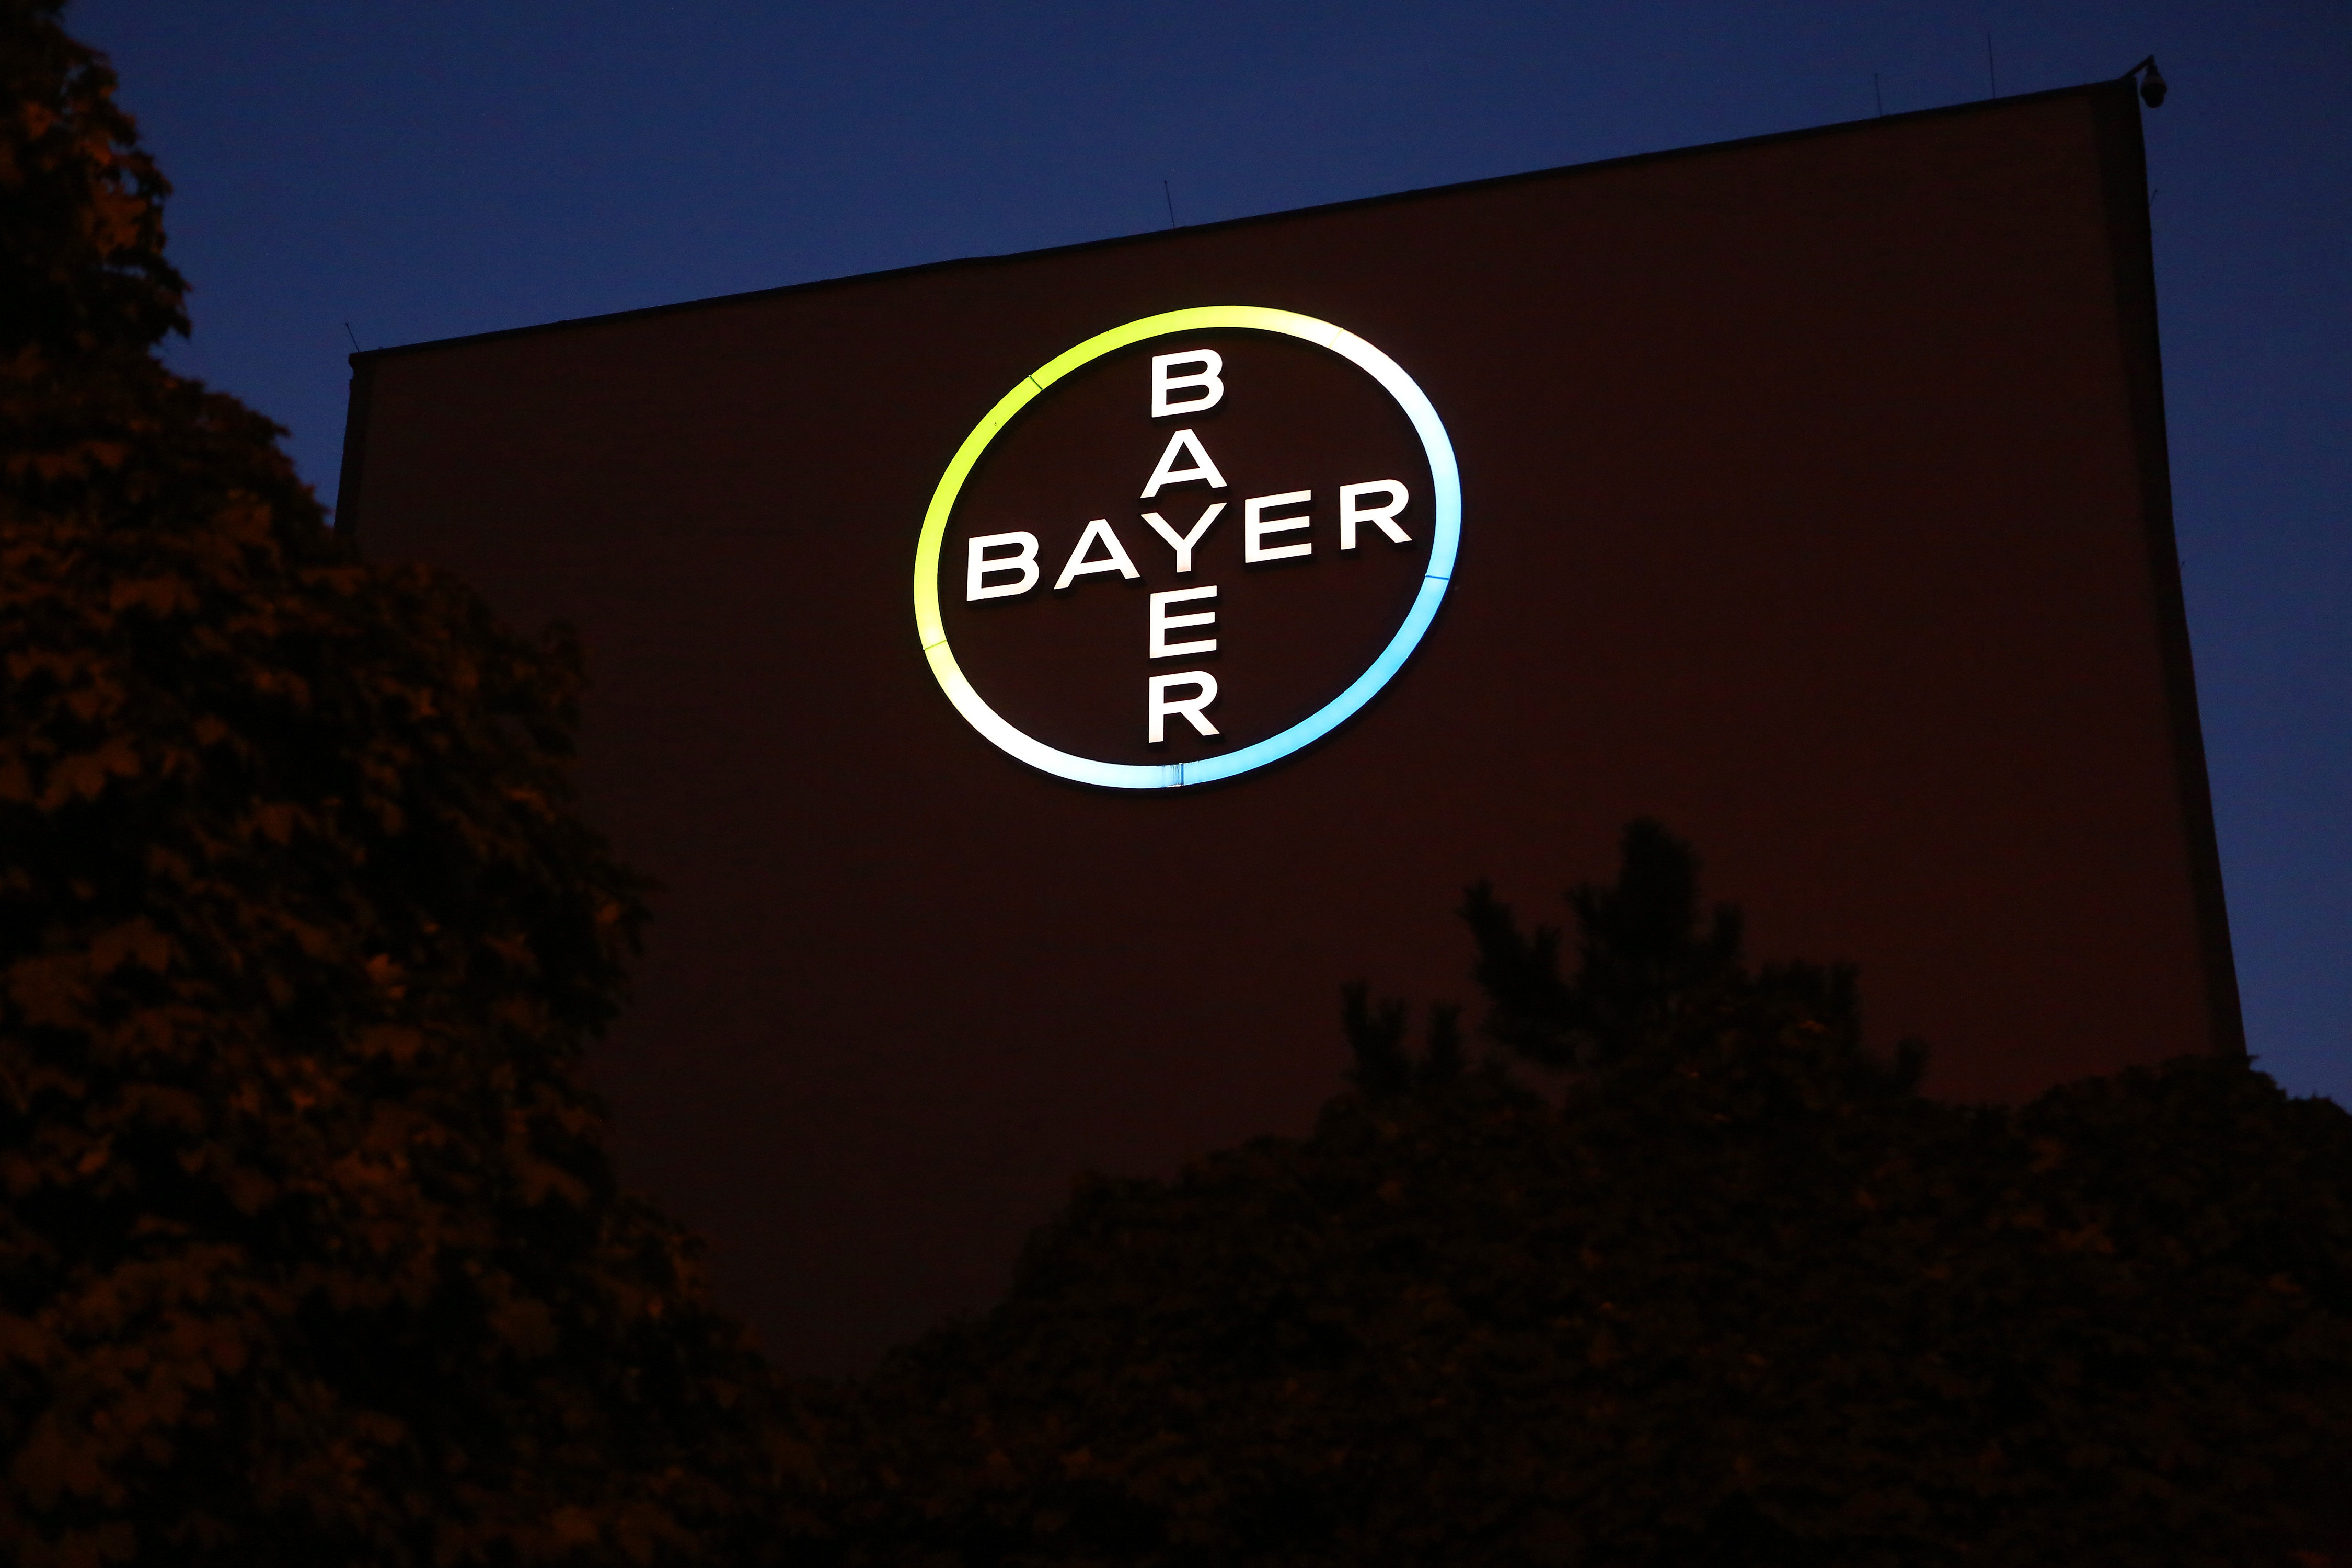 Bayer Pharma Building In Berlin